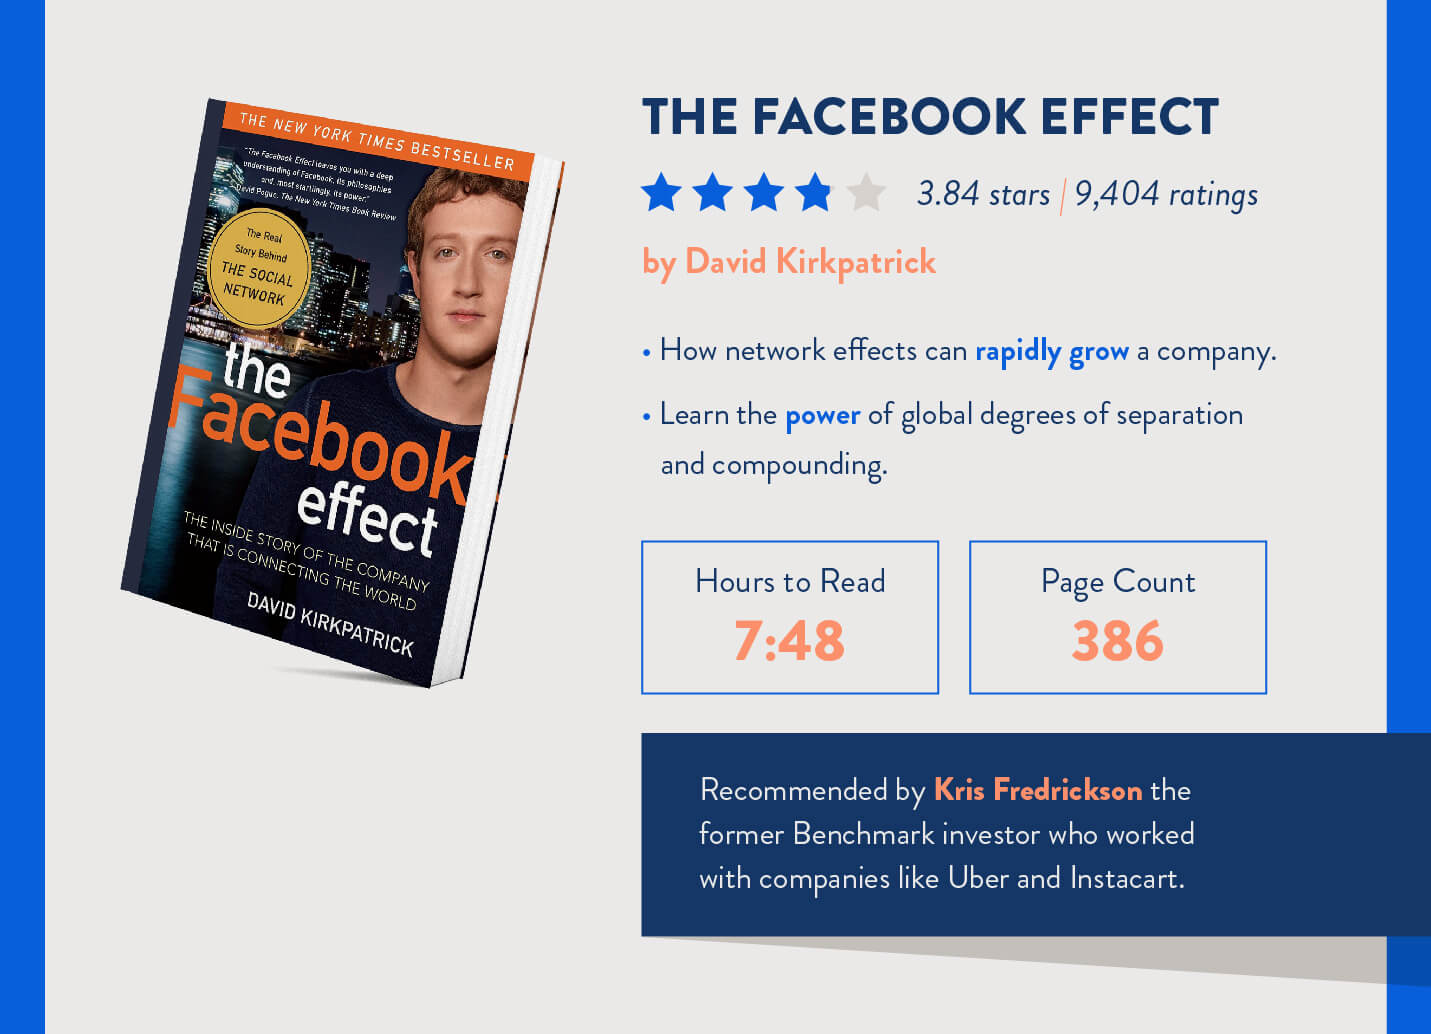 the facebook effect book mobile marketers should read with time it takes and page counts